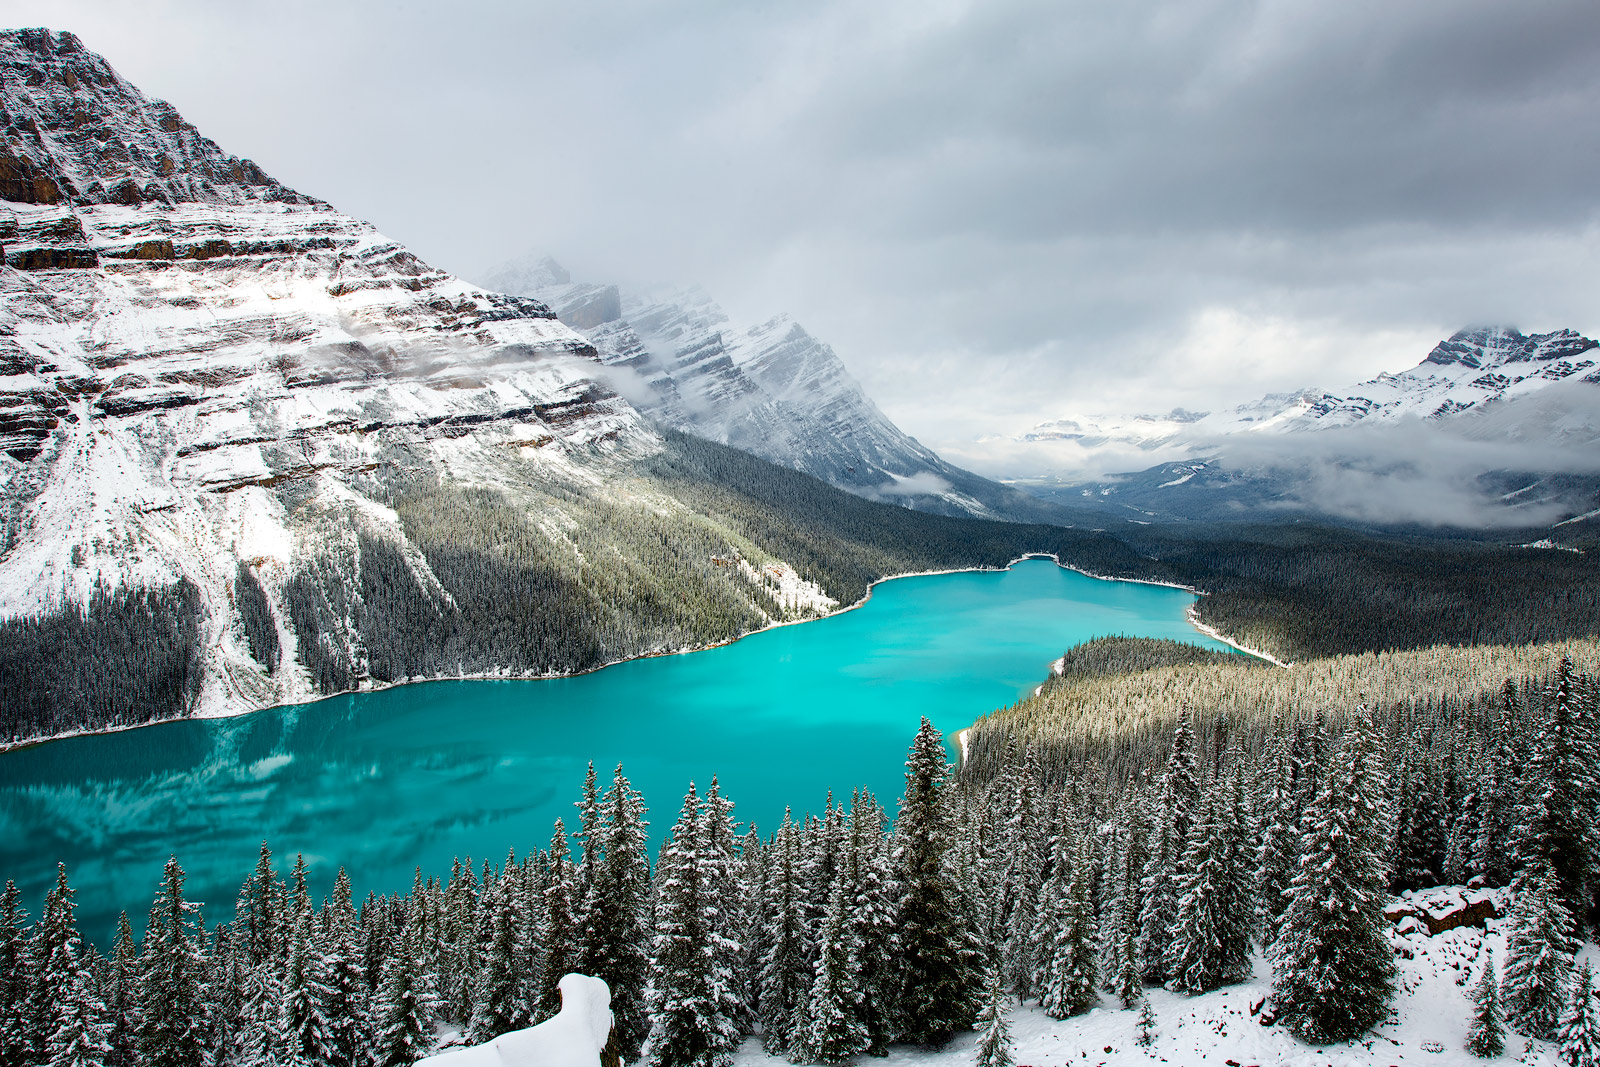 Canada, Glacier, Alberta, Banff, Moraine Lake, Canadian Rockies, Lake Louise, Jasper National Park, Rocky Mountains, Lake Minnewanka, Icefields Parkway, Banff National Park, Peyto Lake, photo